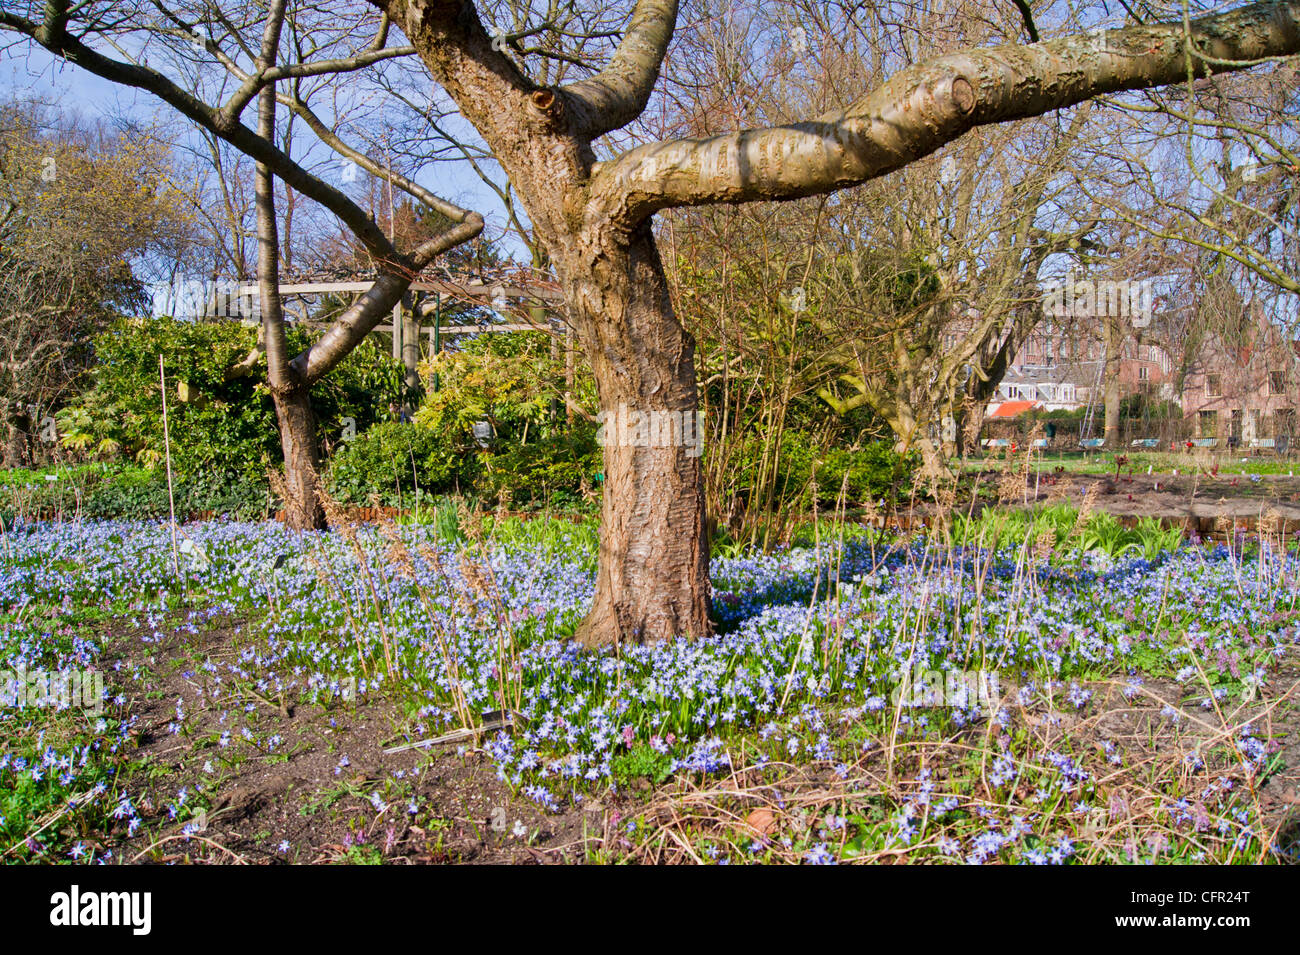 Bare japanese cherry trees with blue star hyacinth in spring stock bare japanese cherry trees with blue star hyacinth in spring izmirmasajfo